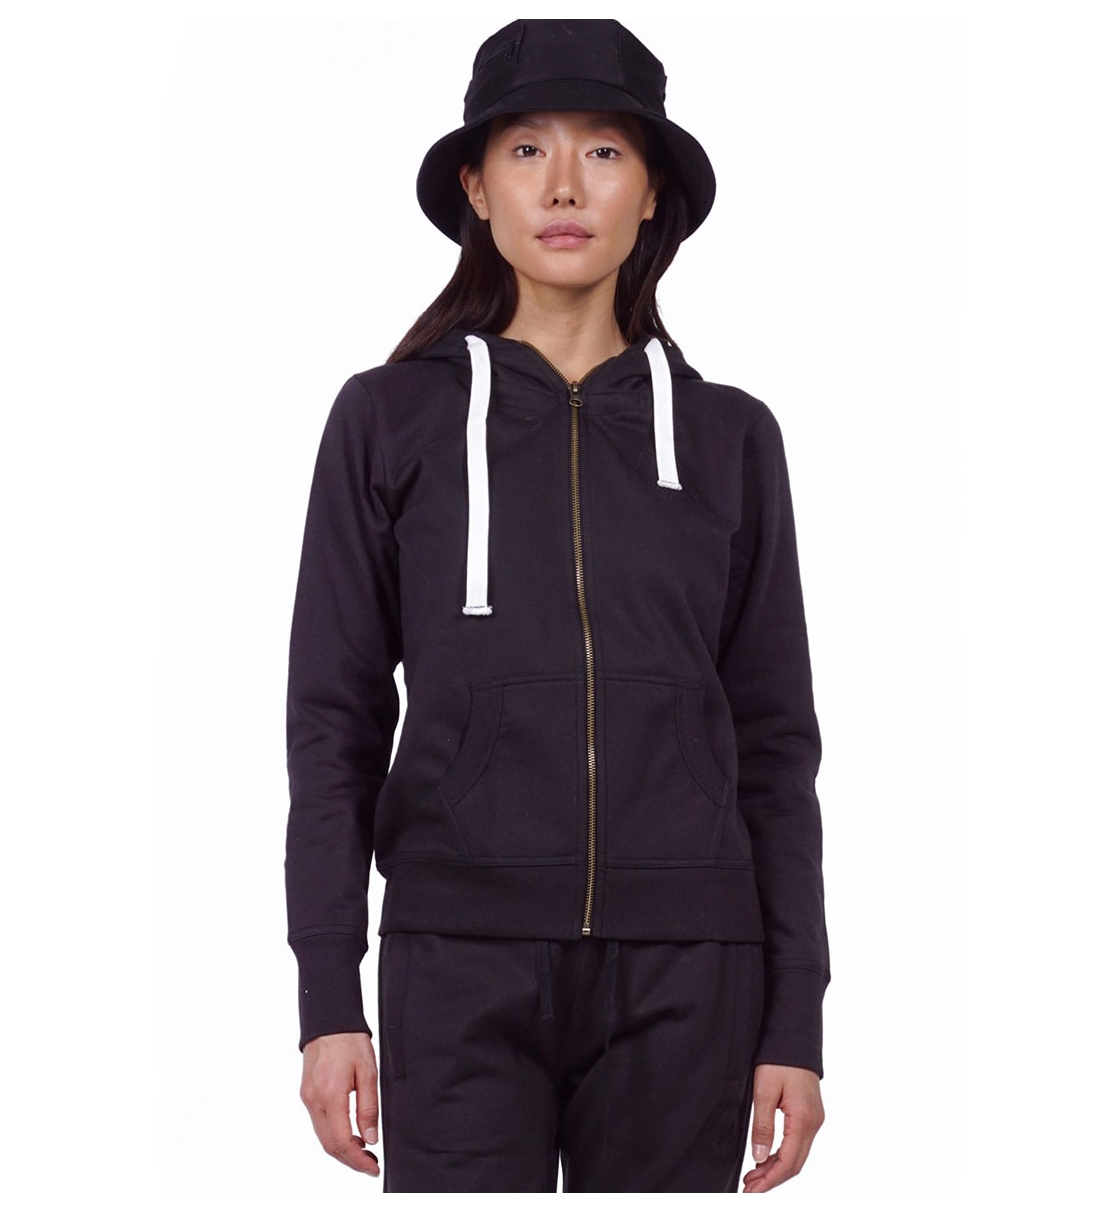 Body Action Fw19 Women Hooded Jacket